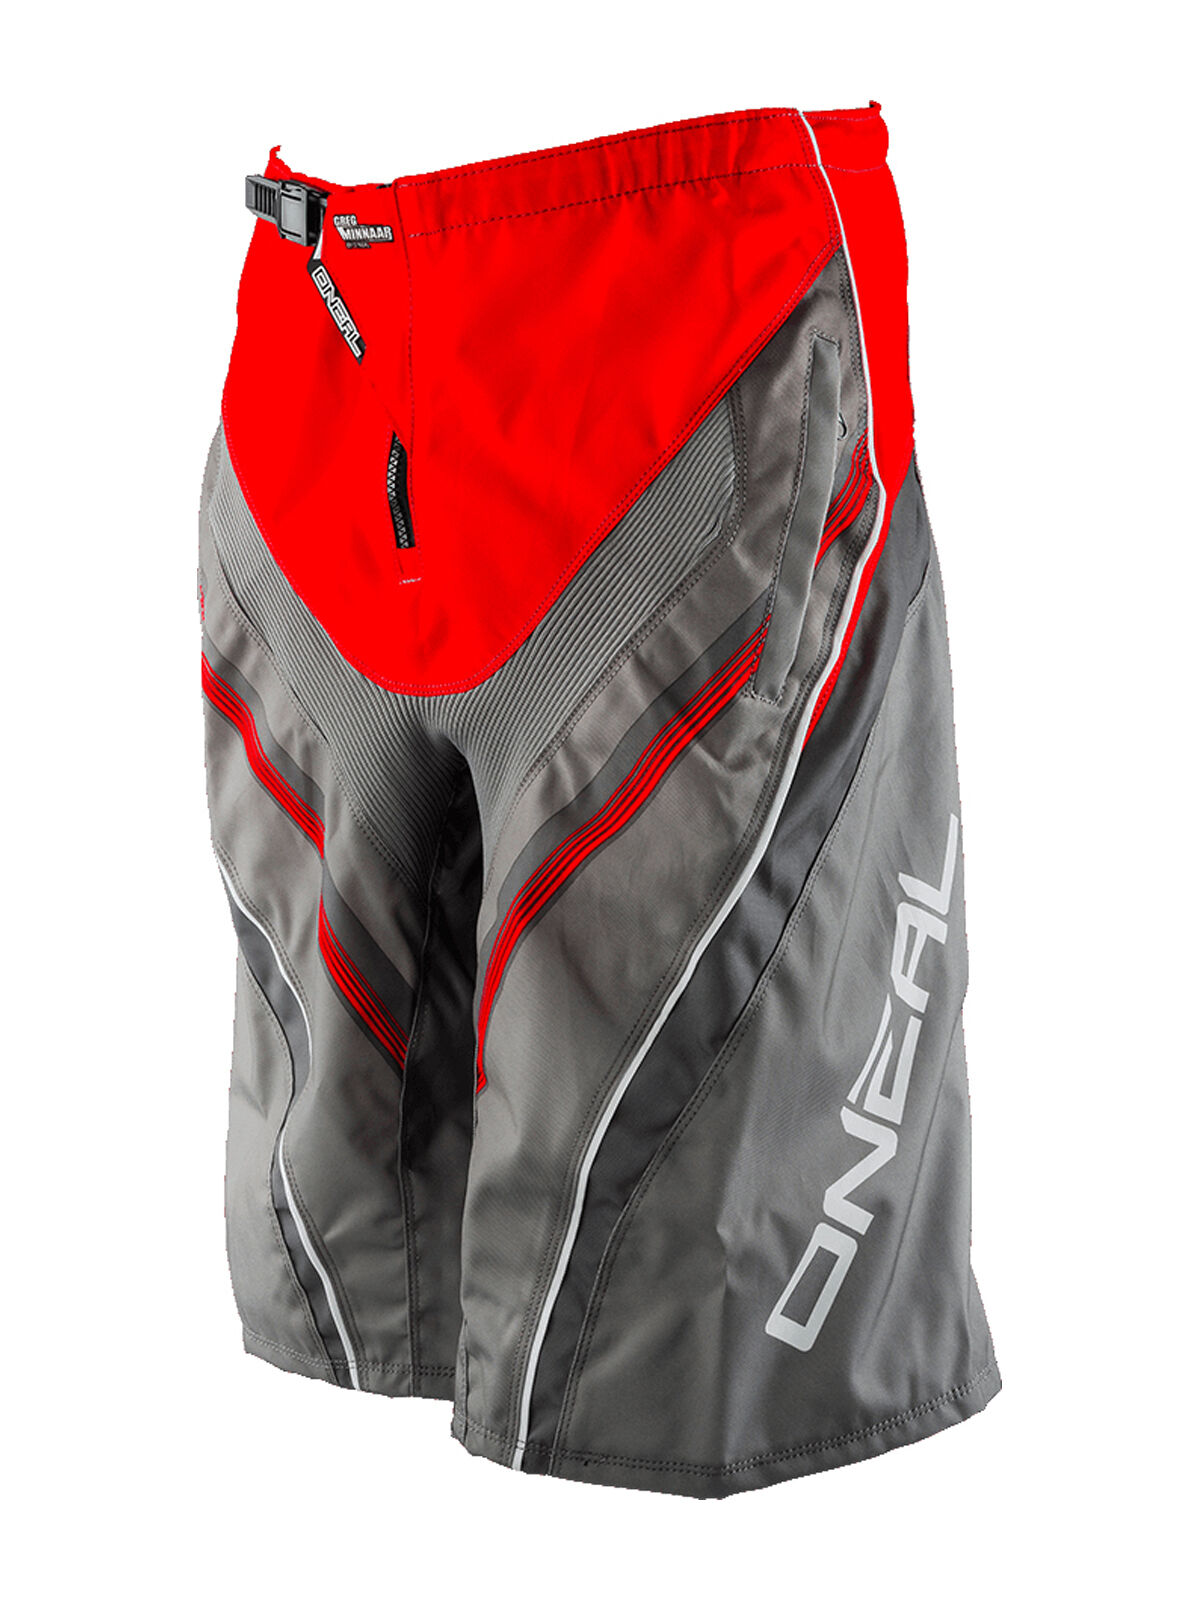 O'Neal Element FR MTB  Men's Cycling Short Red Grey Size L S-634  sale online